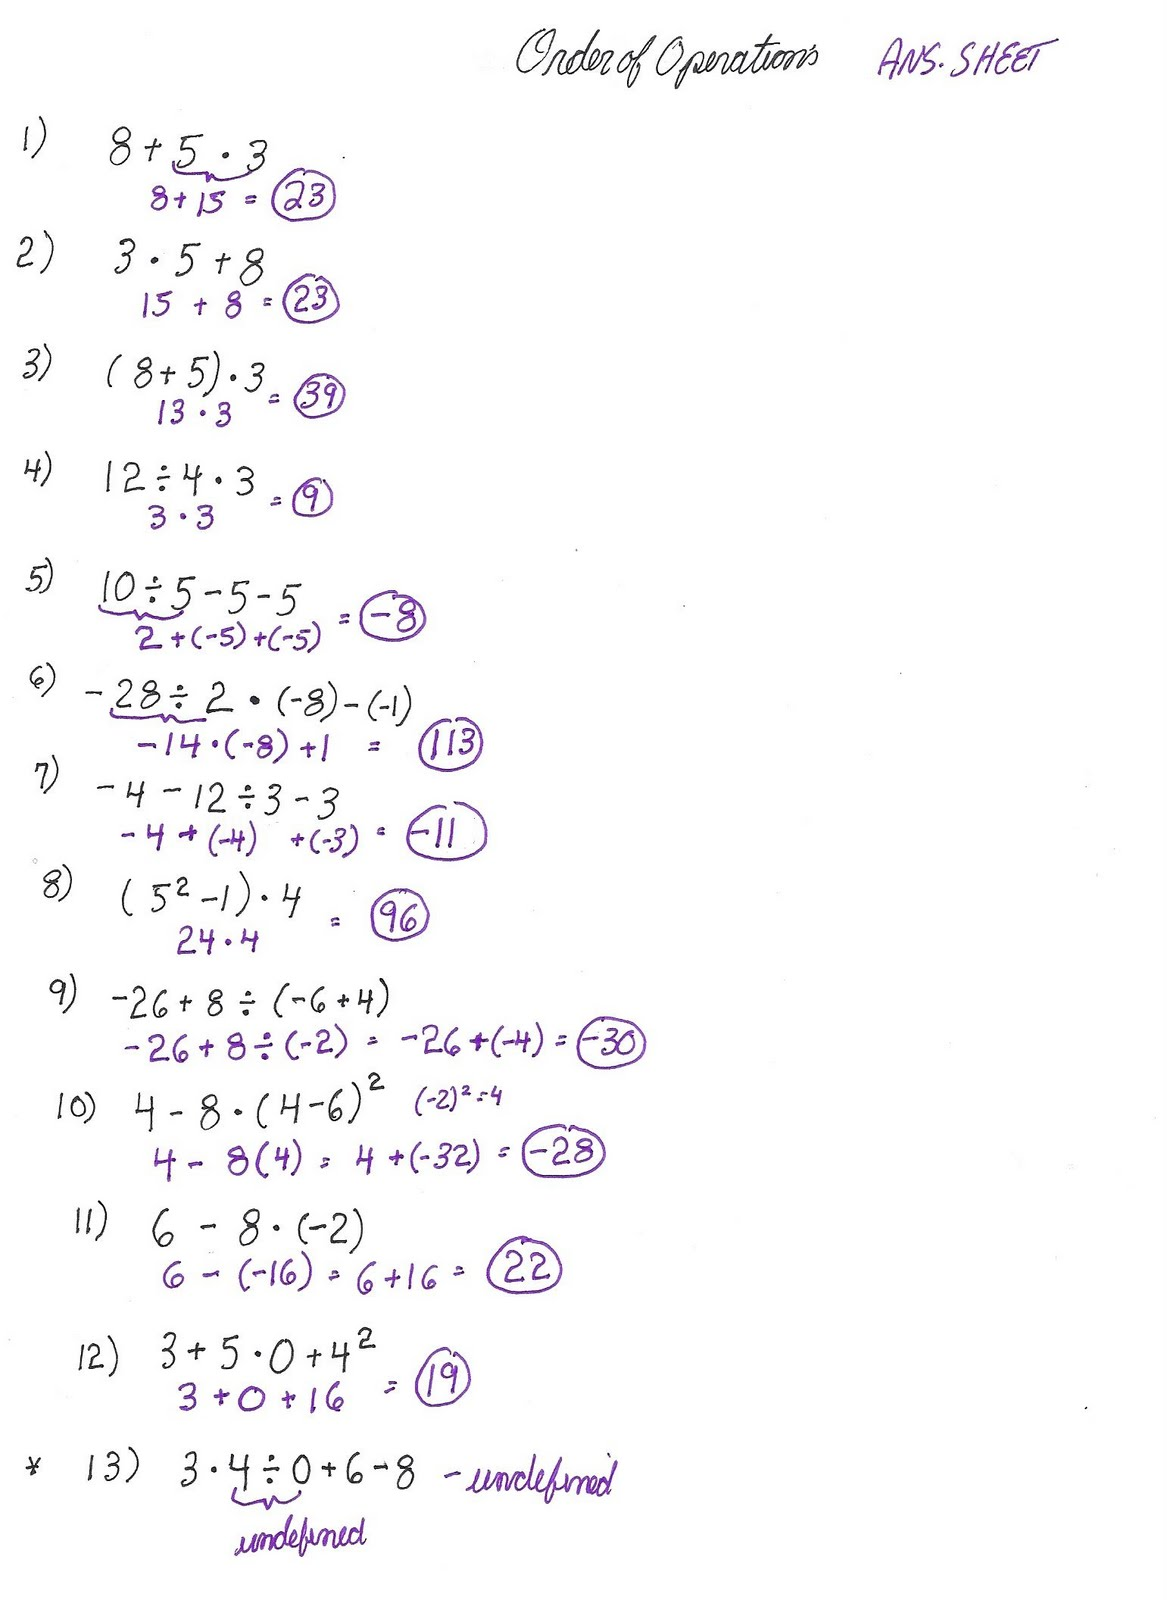 math worksheet : cobb adult ed math order of operations worksheet solutions : Math Worksheet Order Of Operations